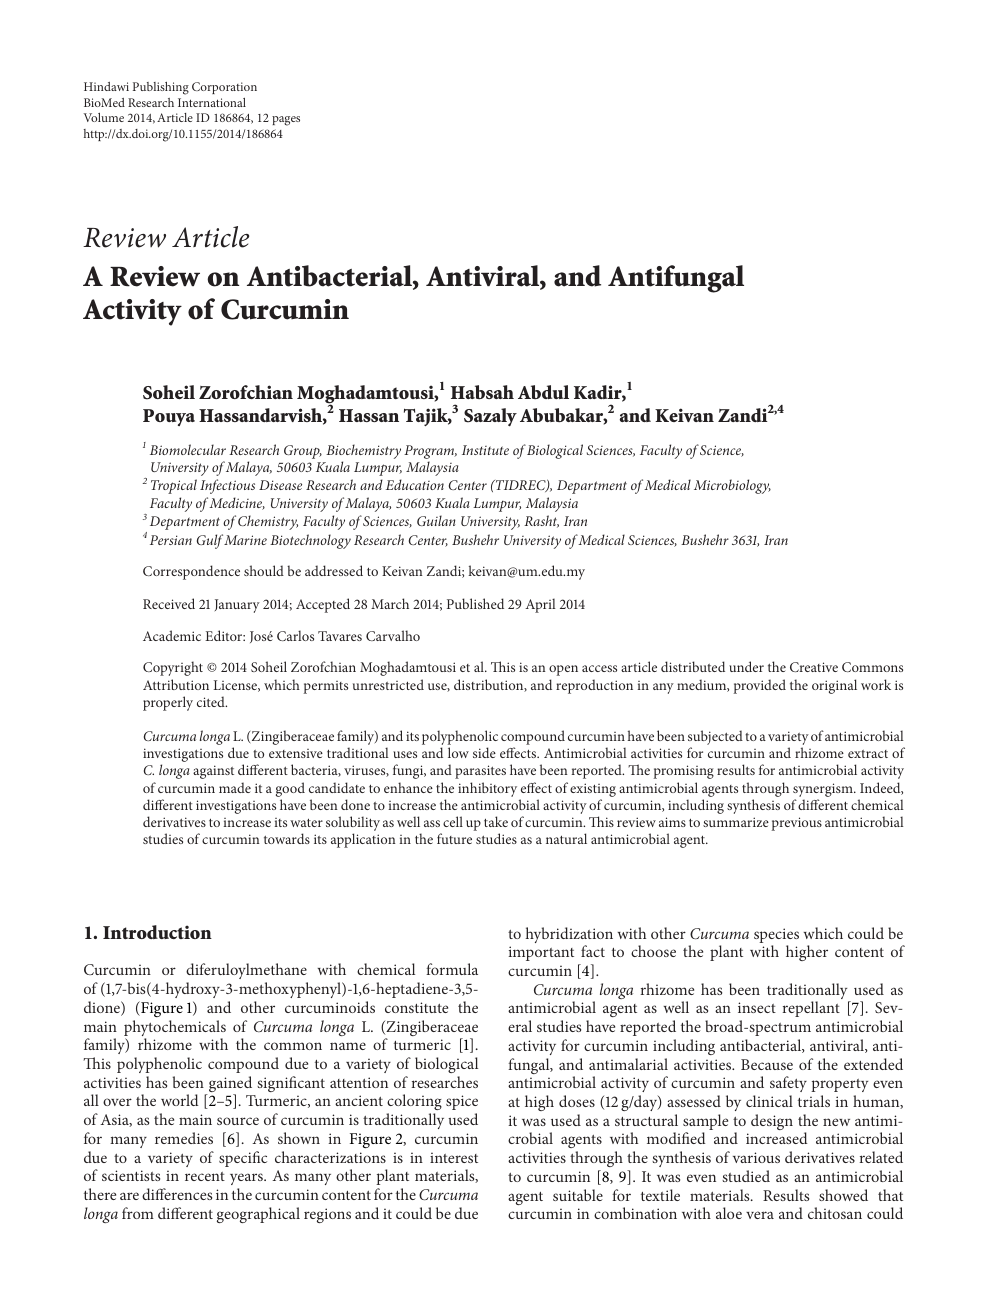 A Review on Antibacterial, Antiviral, and Antifungal